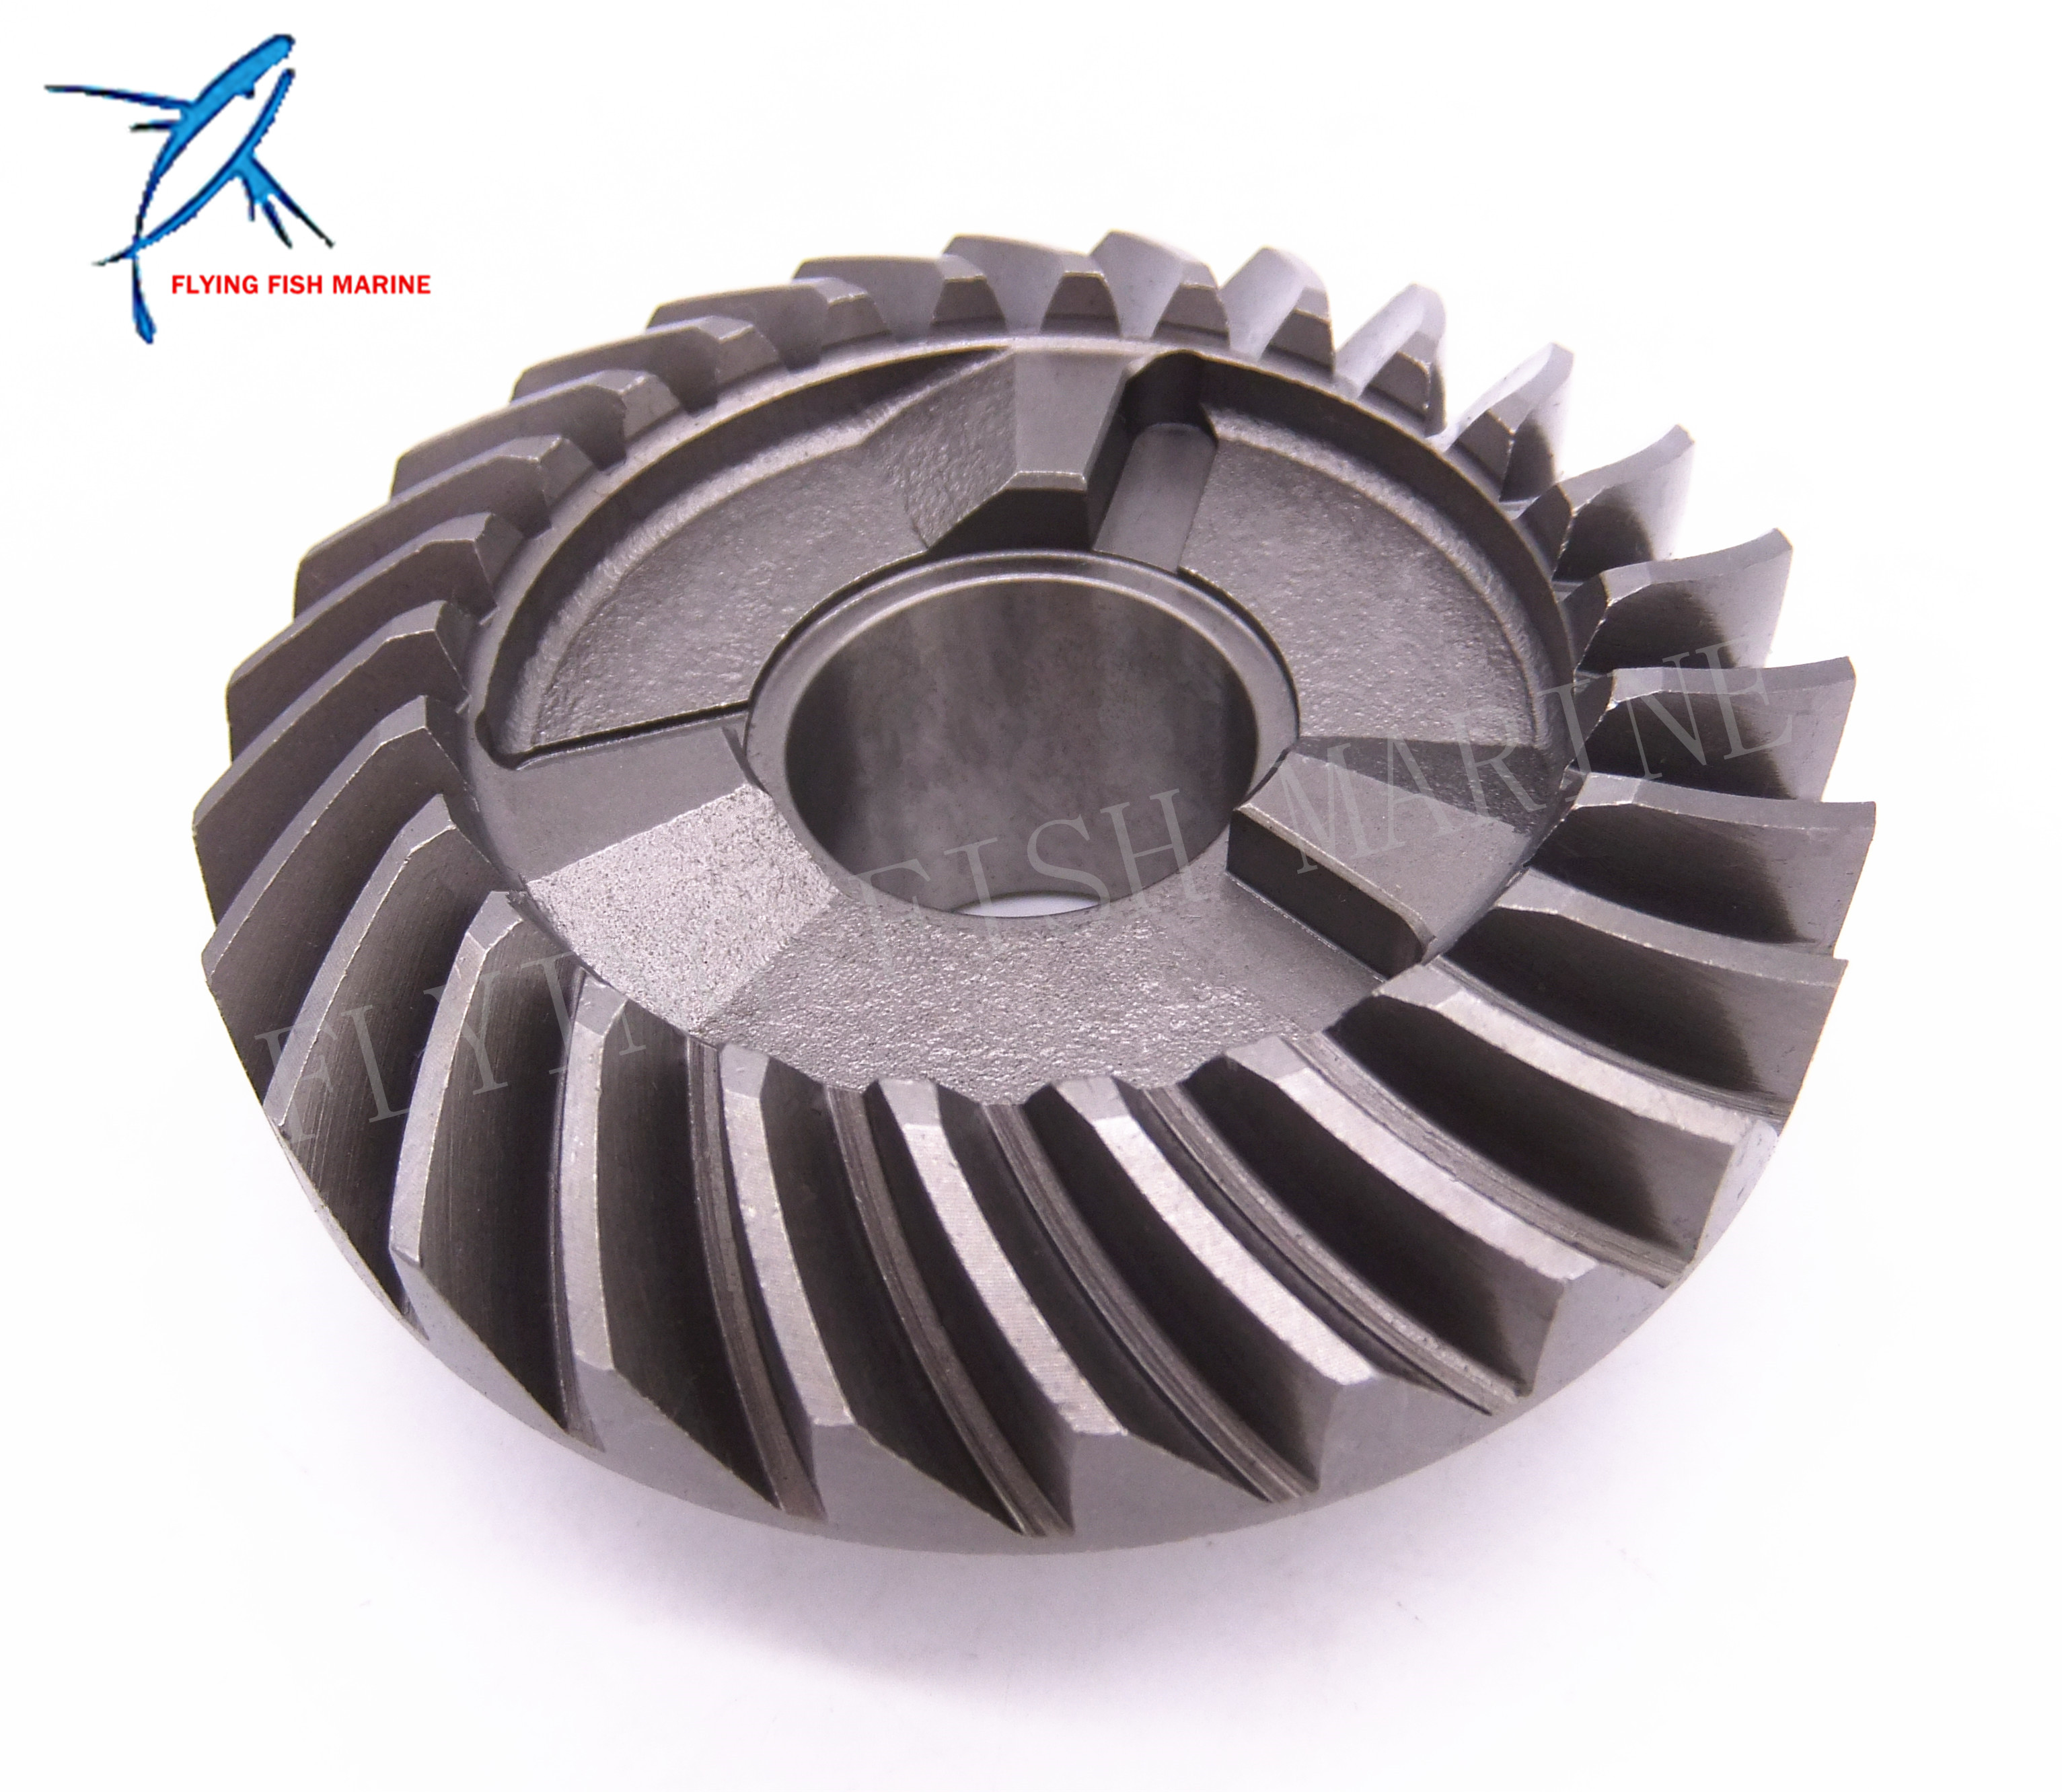 Boat Engine free Shipping Quell Summer Thirst Delicious Boat Motor Reverse Gear T85-04000005 For Parsun Hdx Outboard Engine 2-stroke T75 T85 T90 Atv,rv,boat & Other Vehicle